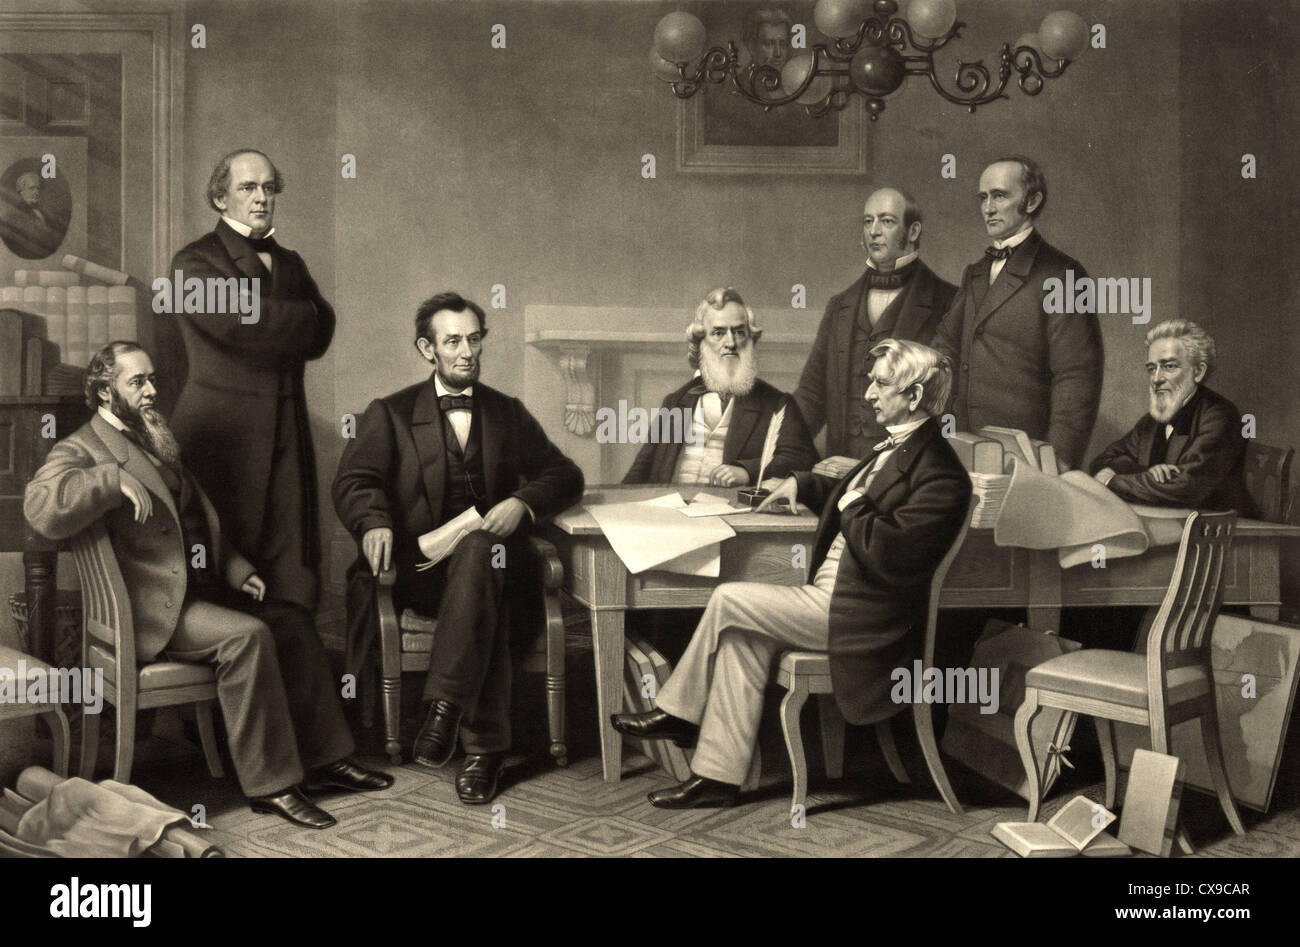 emancipation proclamation stock photos emancipation proclamation abraham lincoln signing the emancipation proclamation on 22 1862 stock image